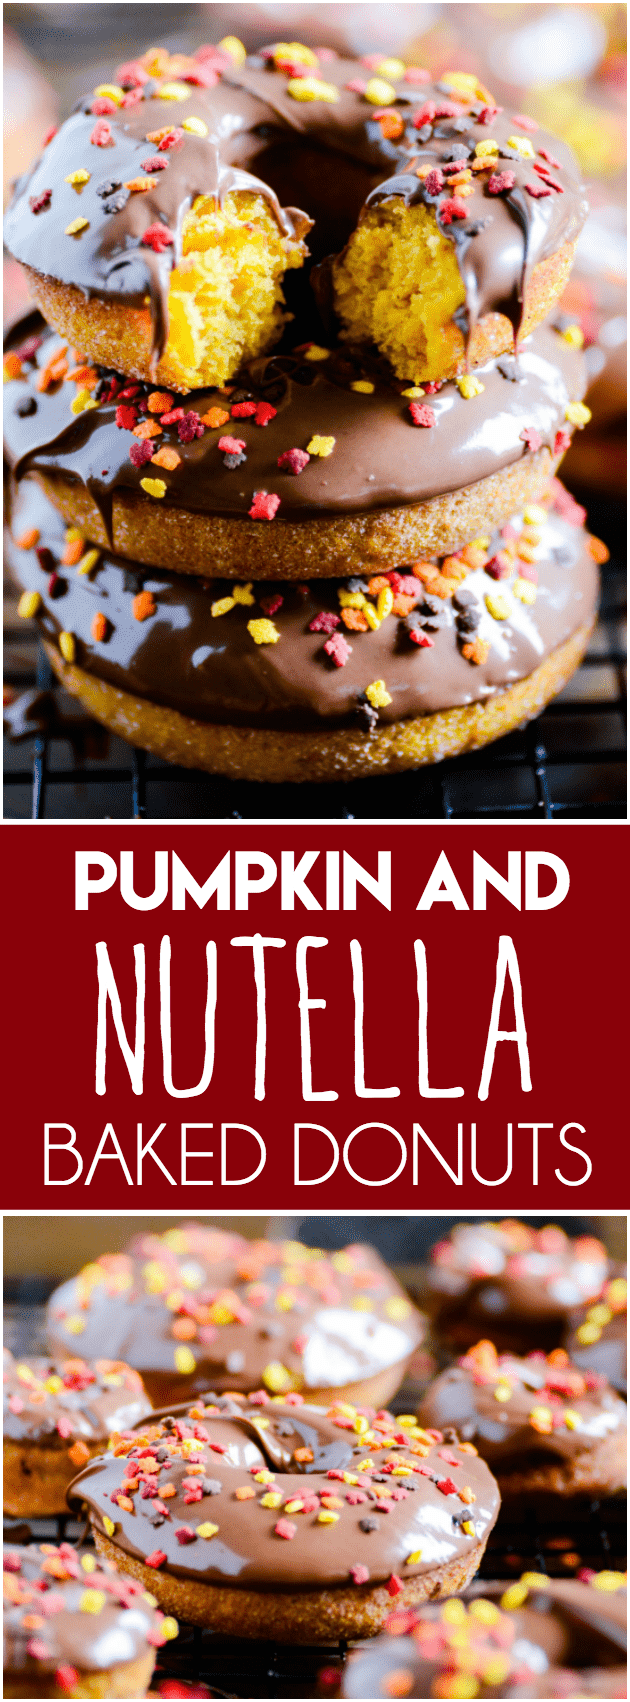 Perfectly baked pumpkin donuts coated with cinnamon sugar and topped with Nutella.